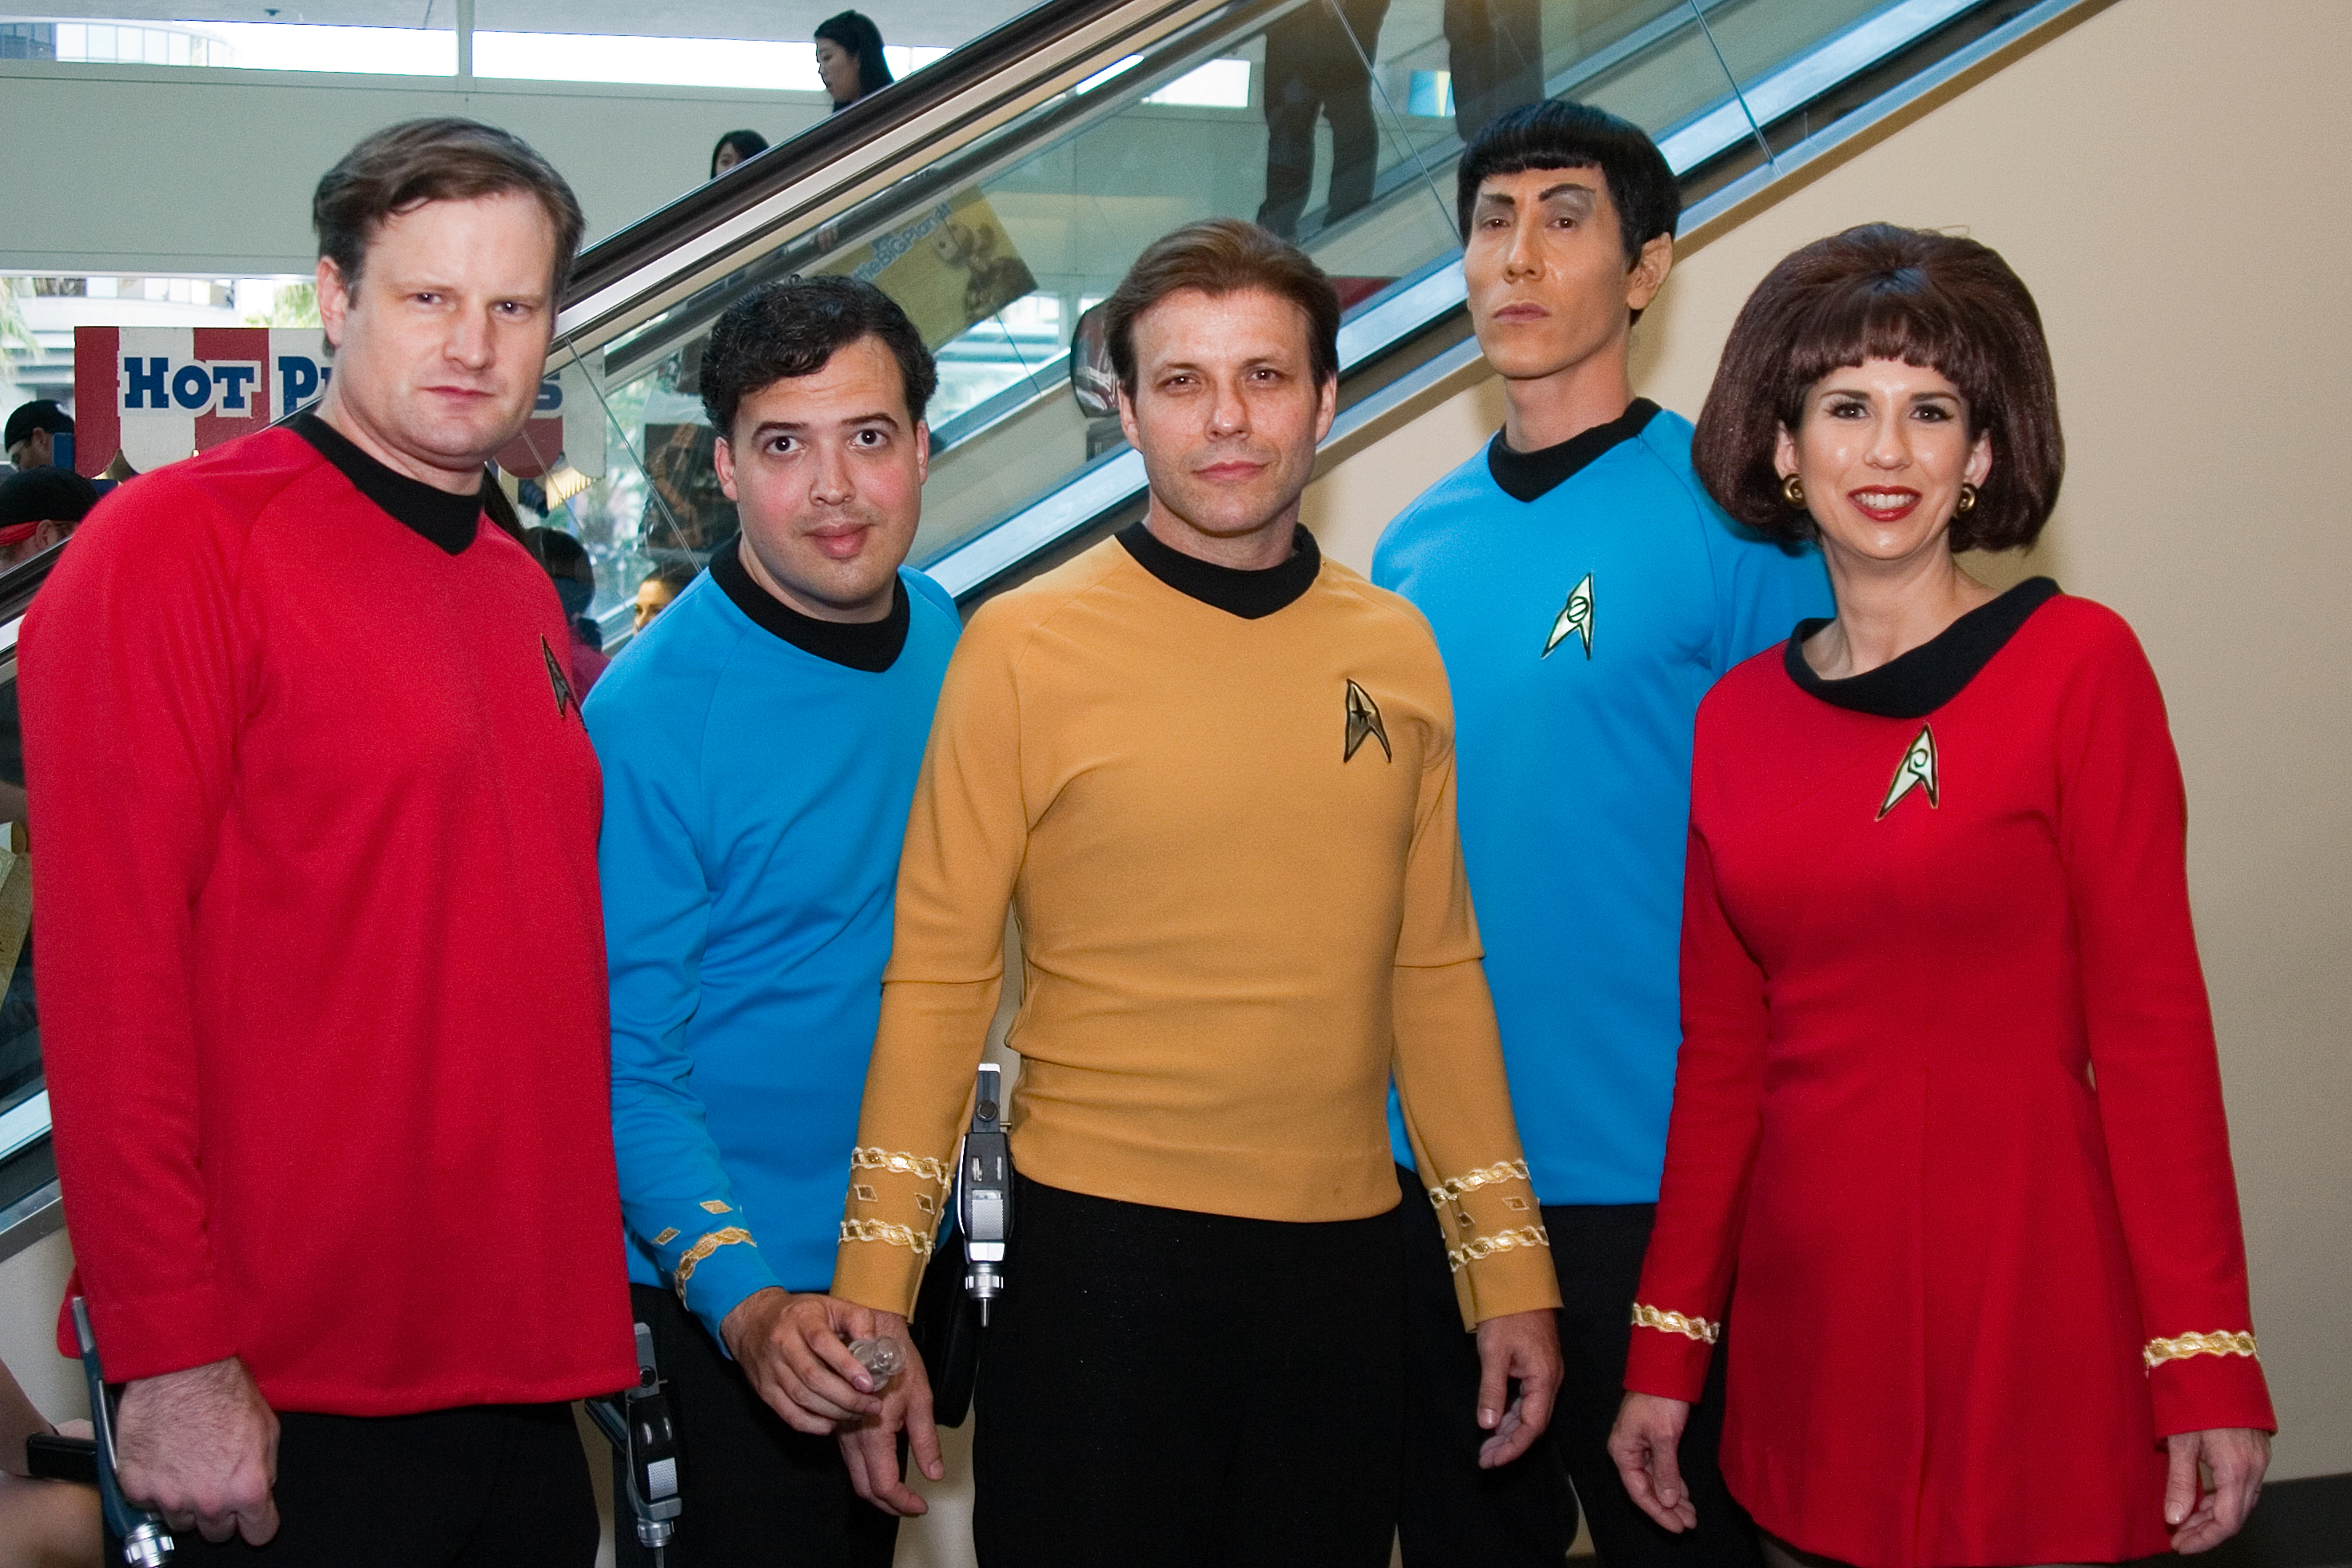 Photo of people dressed as Star Trek characters.